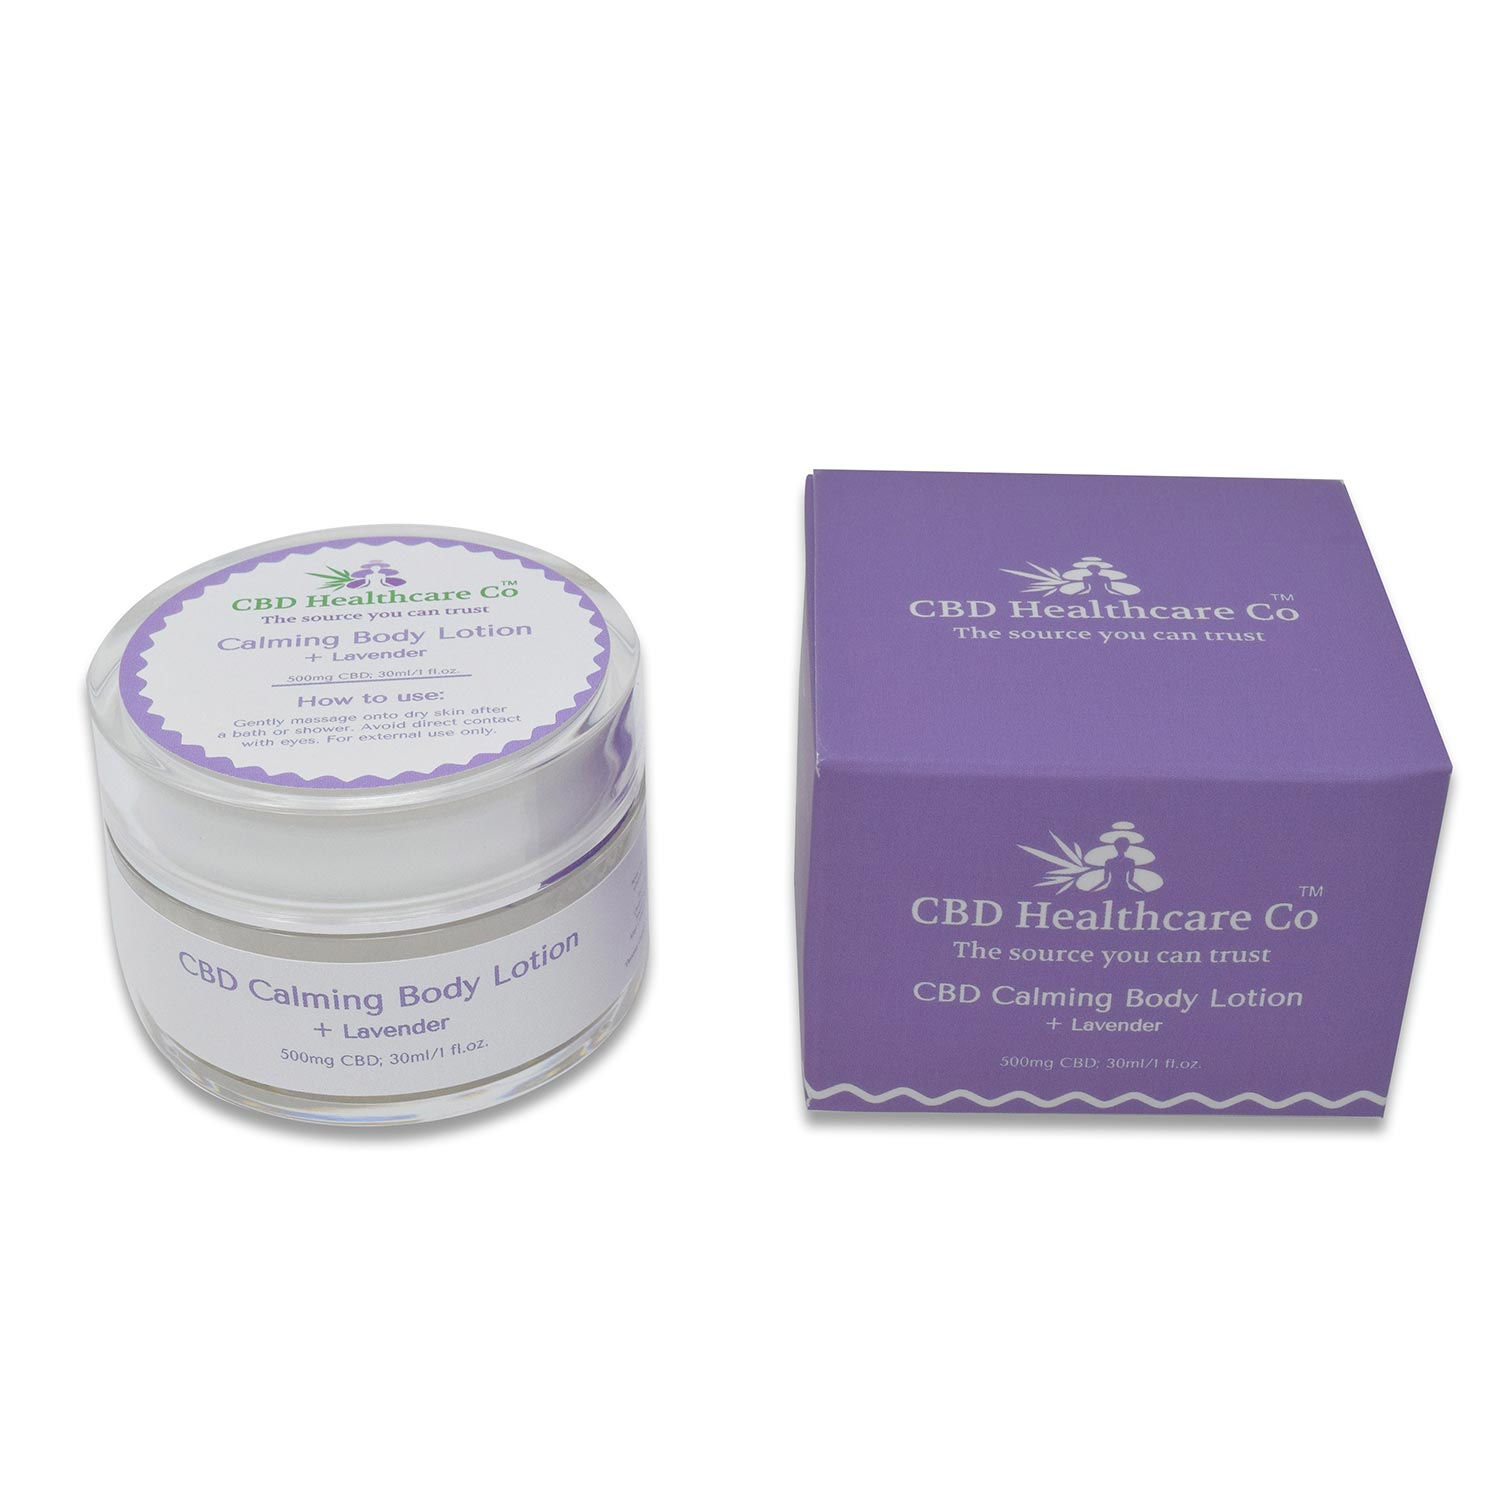 CBD Calming Body Lotion